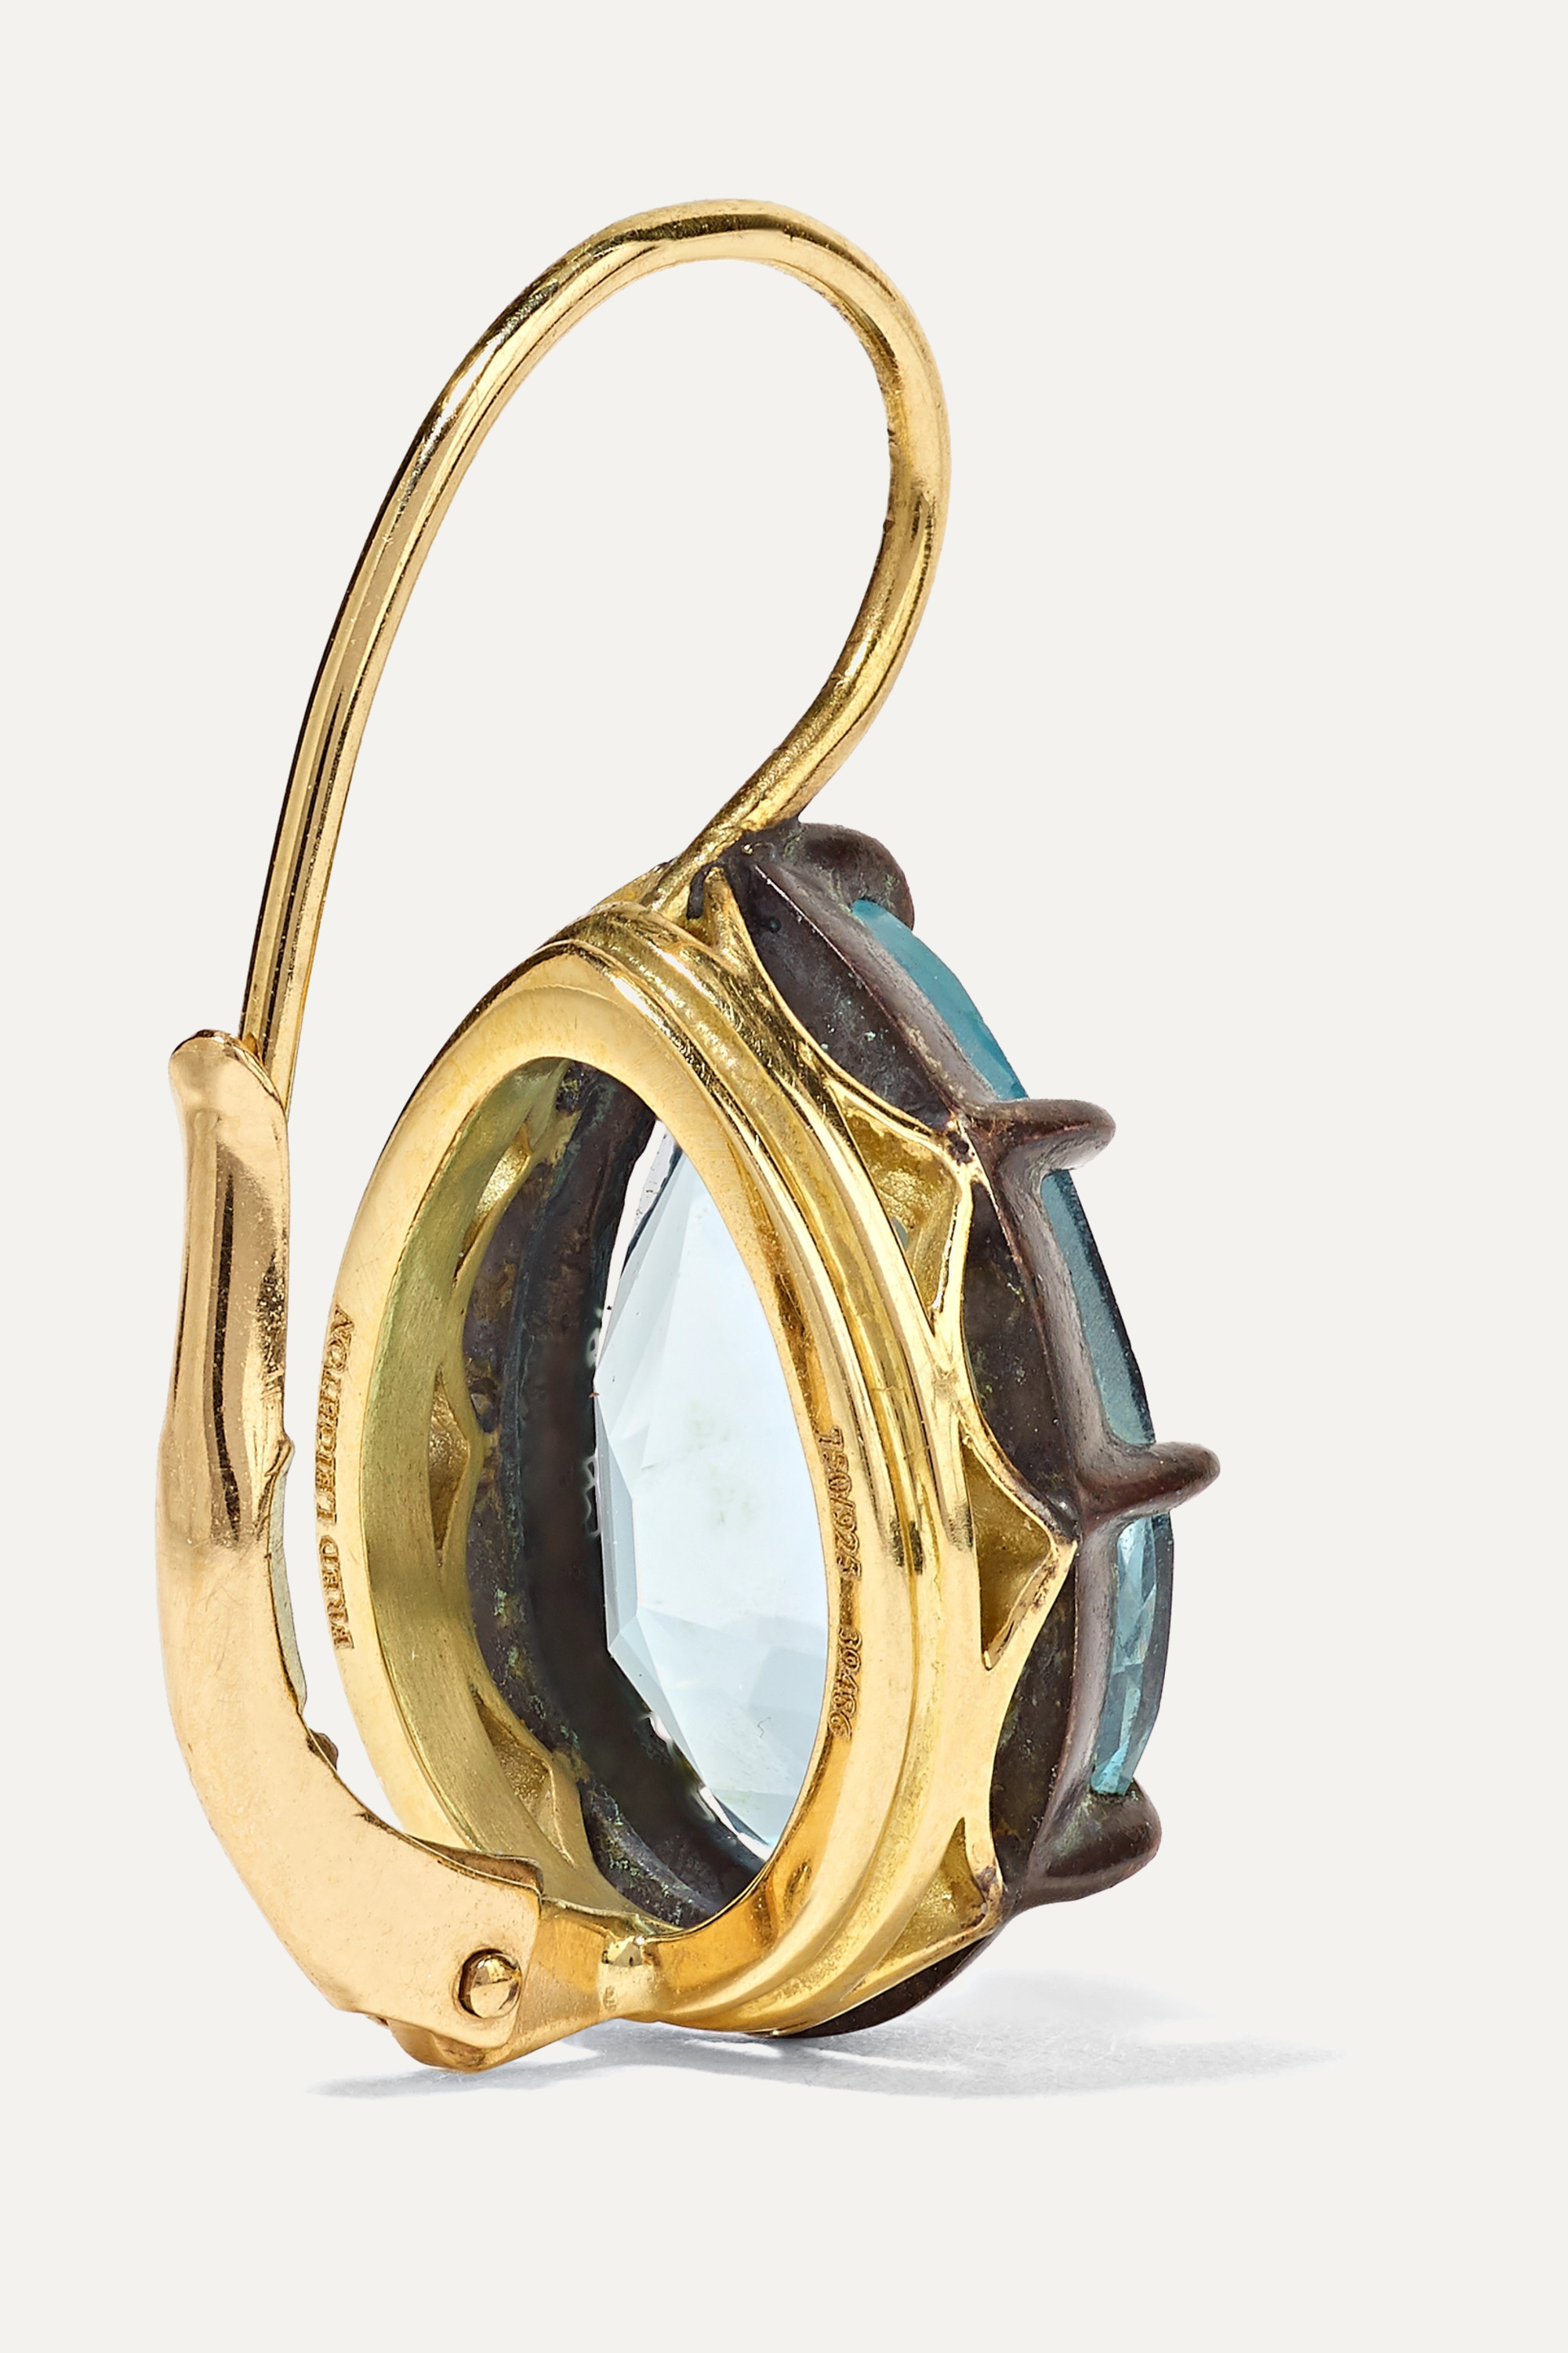 FRED LEIGHTON Collection 18-karat gold, sterling silver and topaz earrings